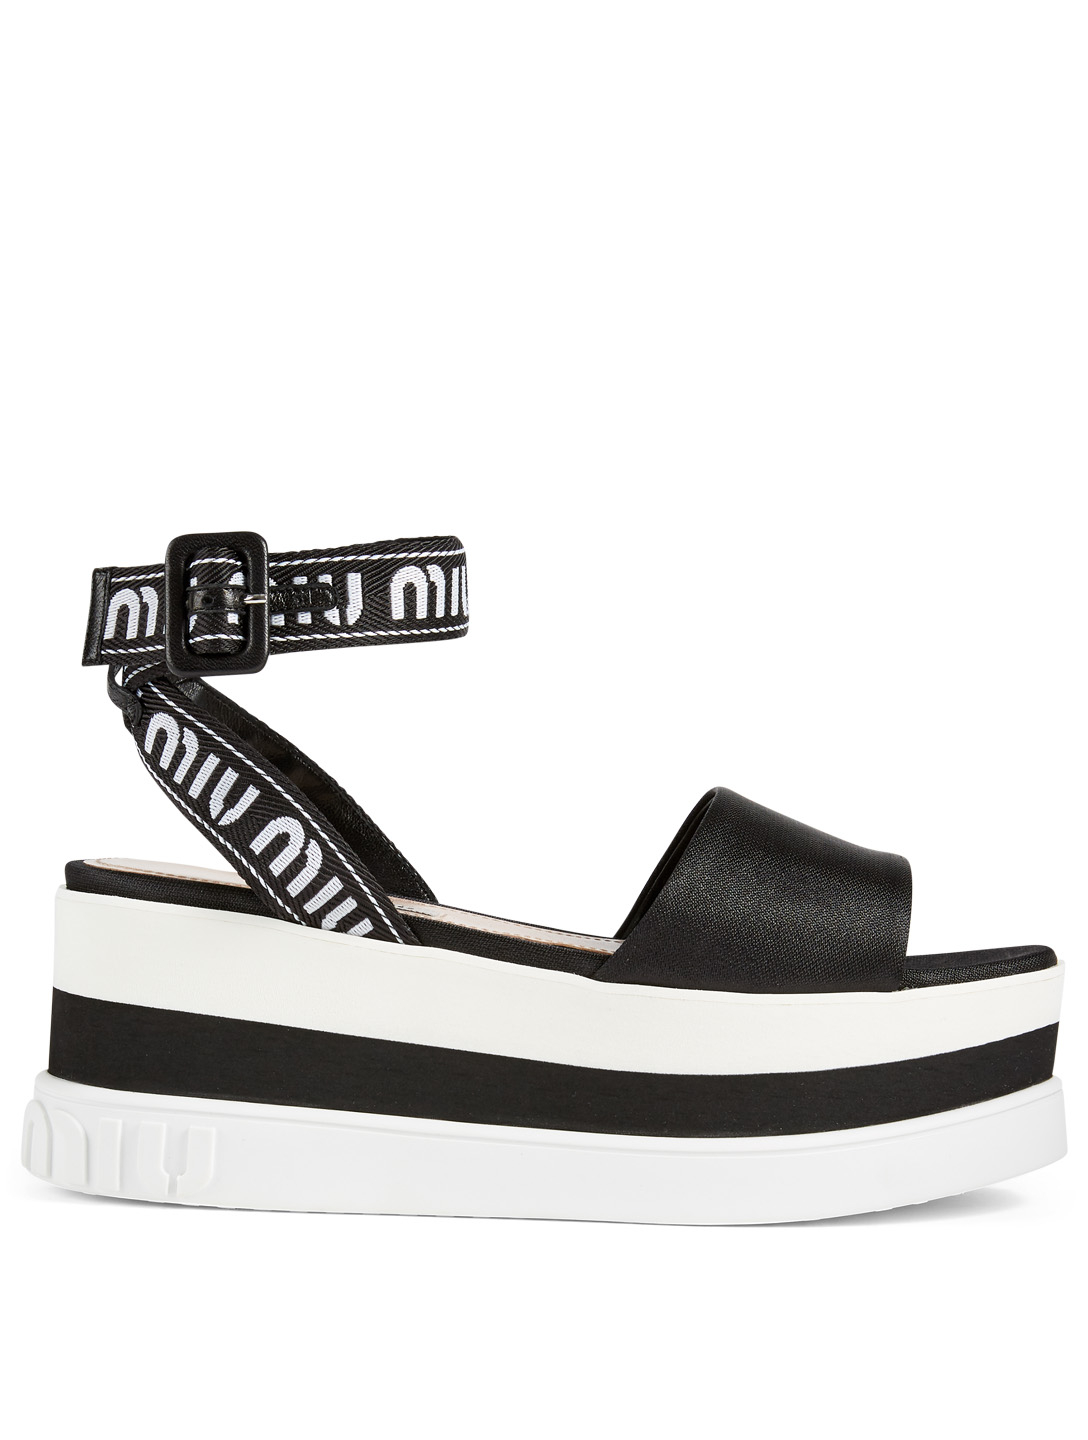 MIU MIU Logo Platform Sandals Womens Black